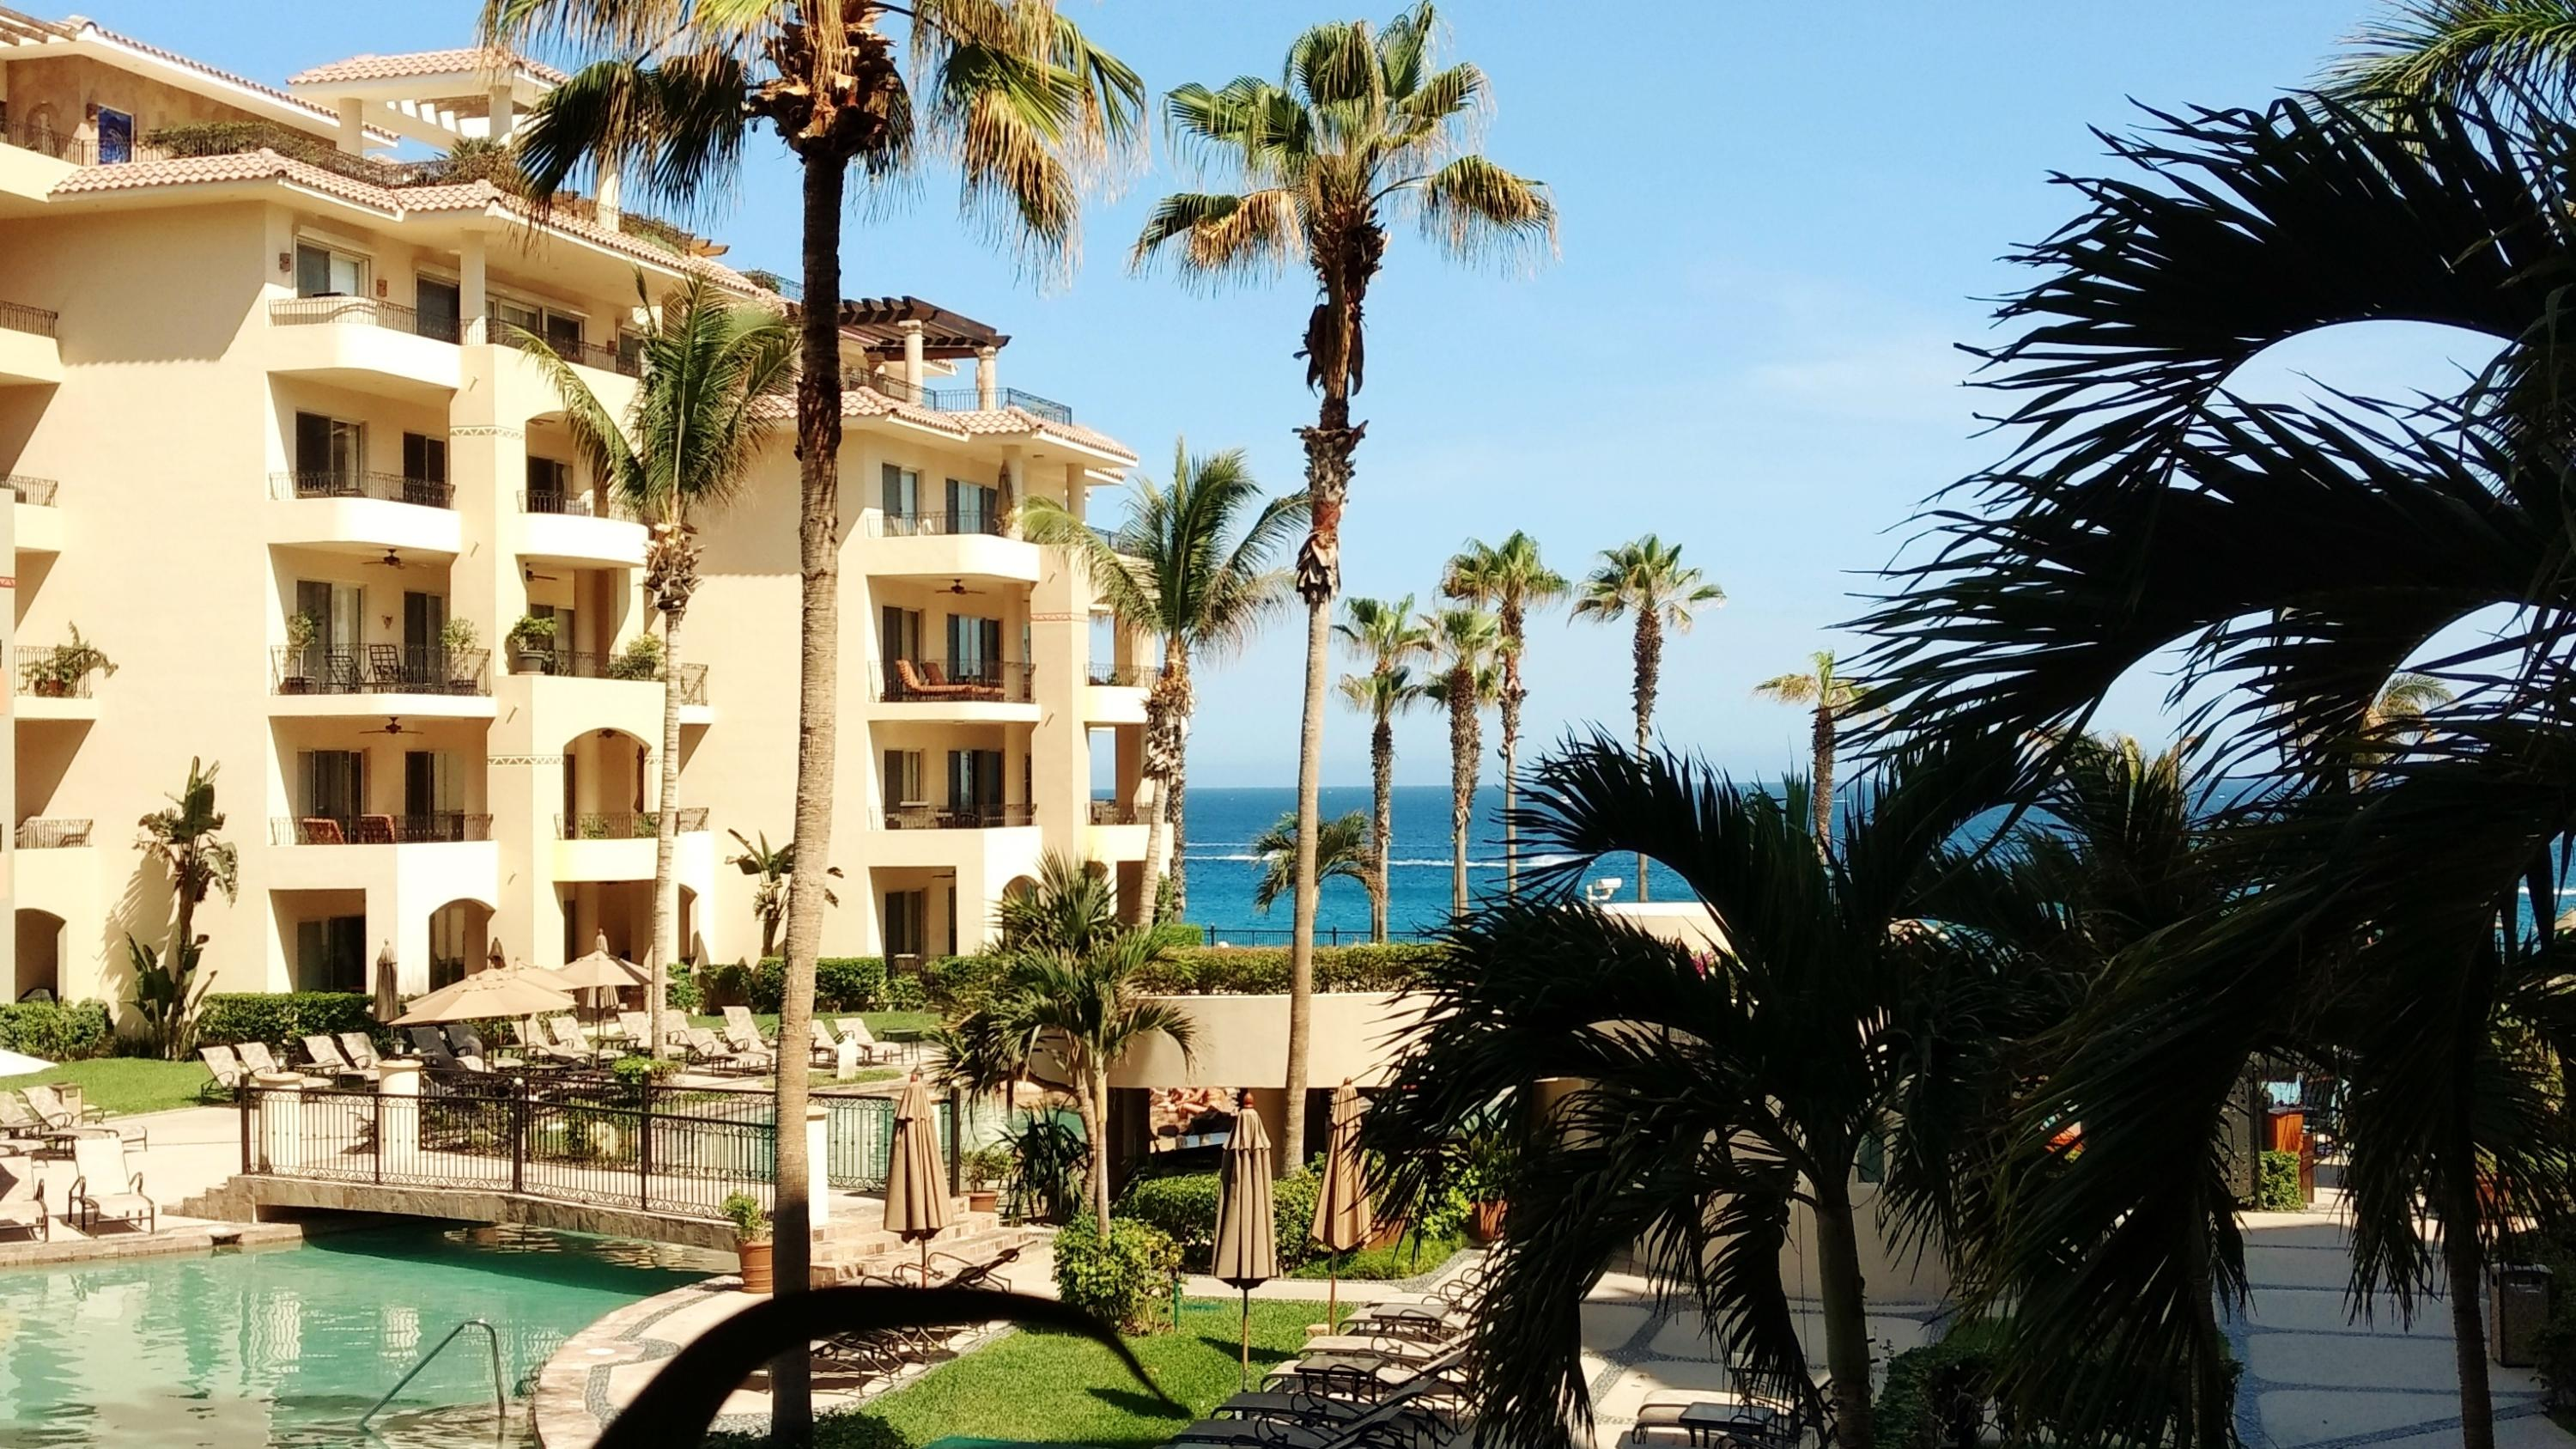 Cabo San Lucas, 2 Bedrooms Bedrooms, 6 Rooms Rooms,3 BathroomsBathrooms,Condo,For Sale,Camino Viejo a San Jose Km 0.5,17-2723